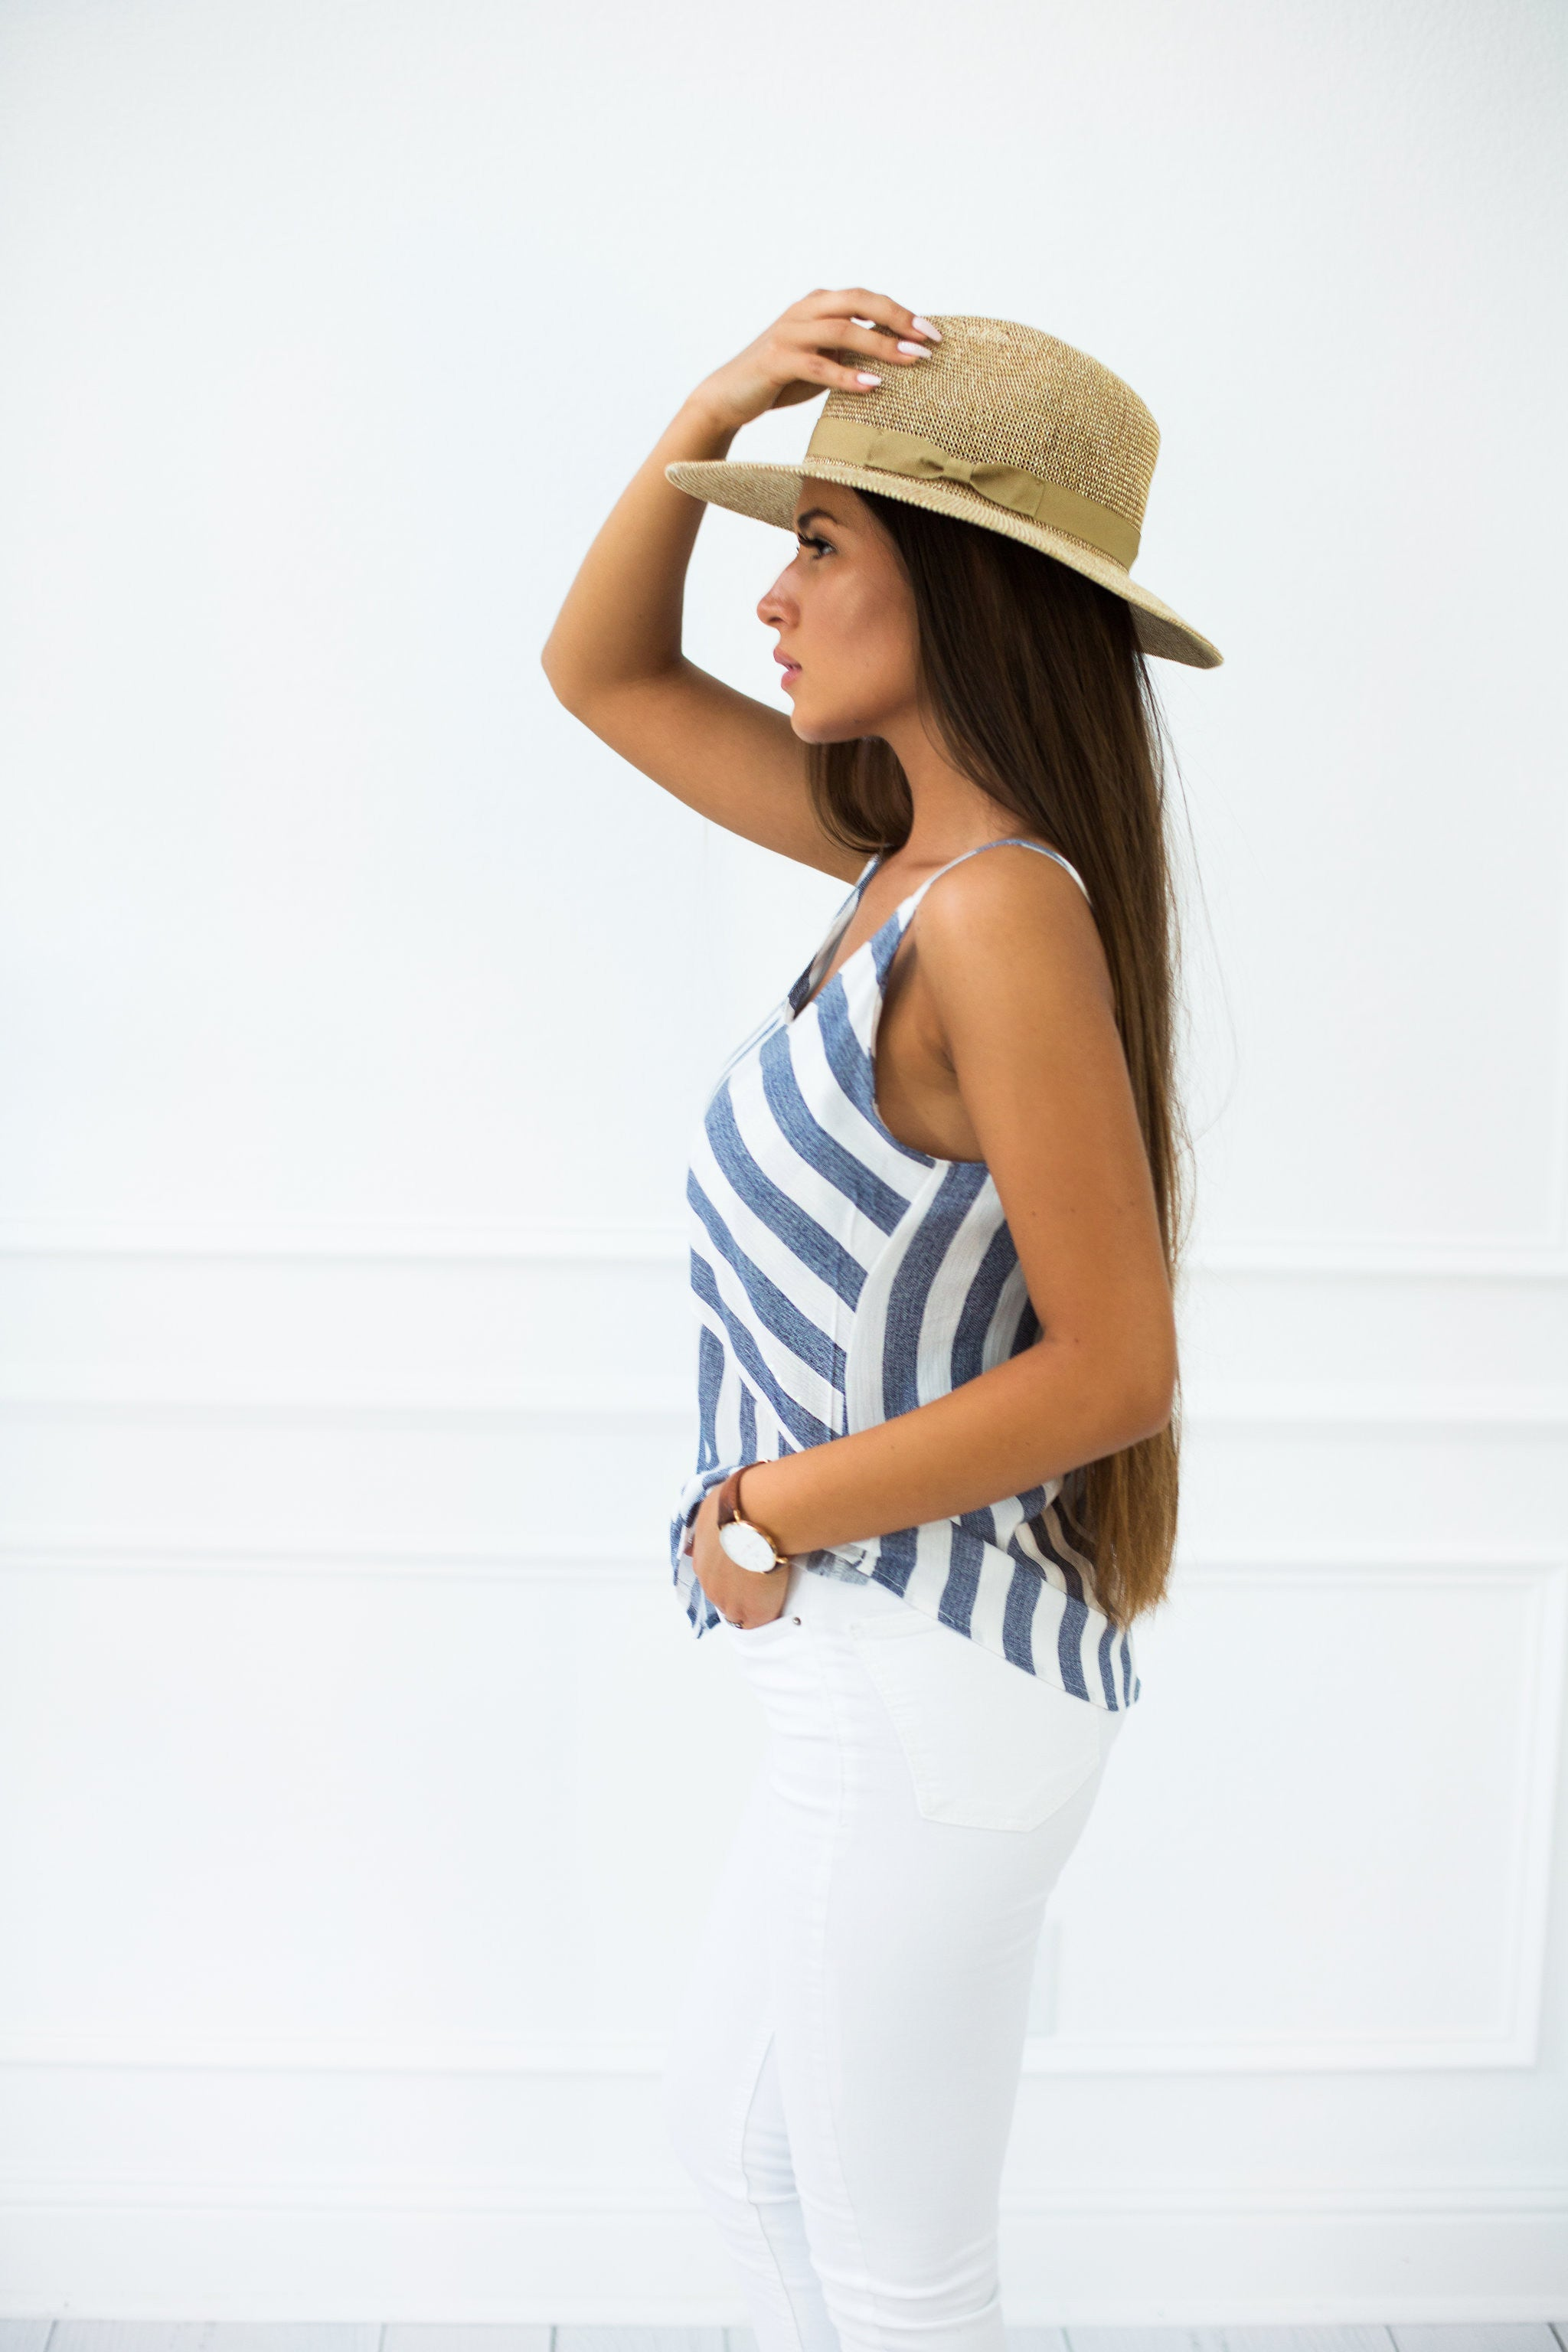 Mimi Striped Tank Top - llacie